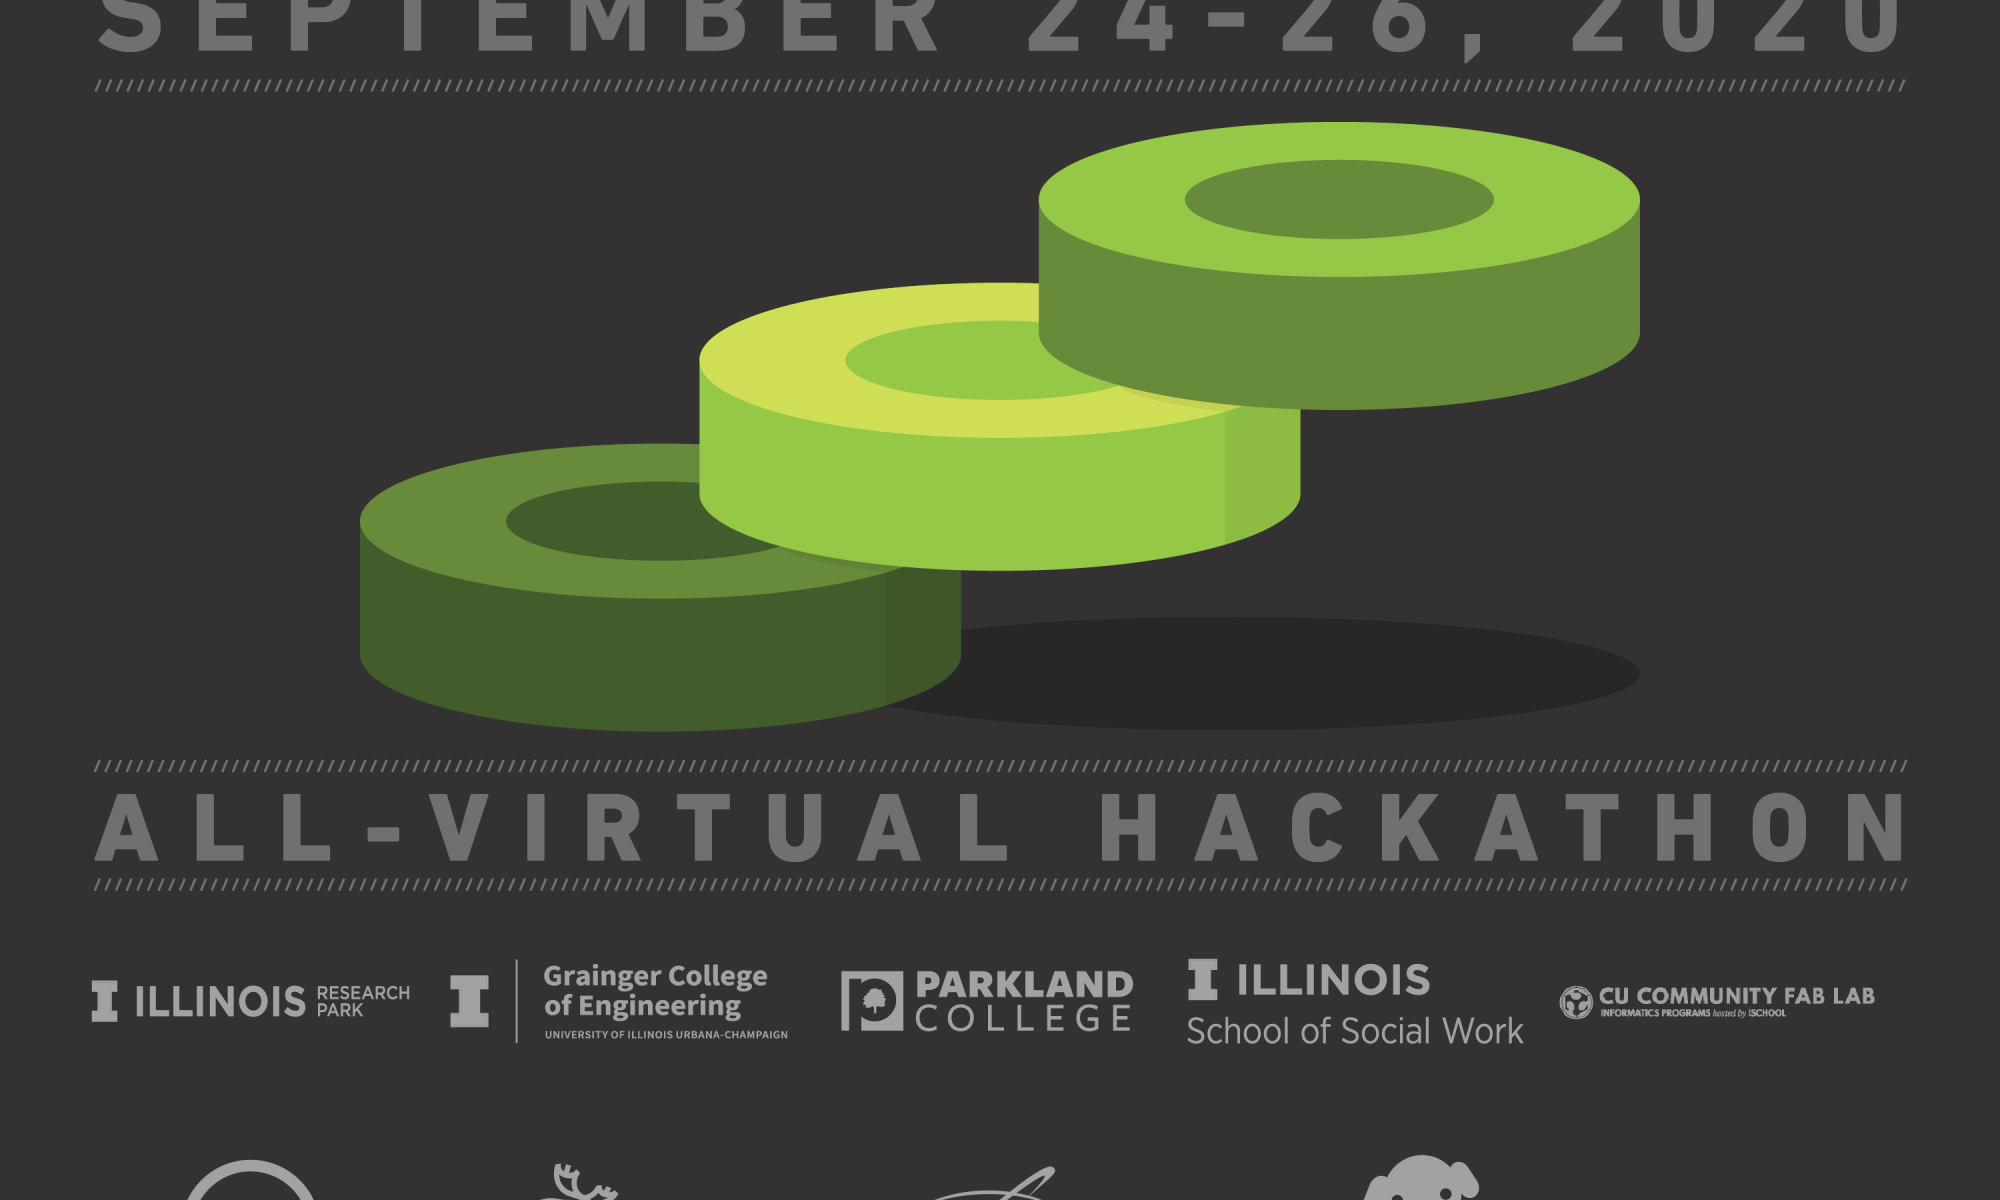 PYGHACK Returns in 2020 as an All-Virtual Event; Mentors, Participants Wanted 3 PYGHACK Returns in 2020 as an All-Virtual Event; Mentors, Participants Wanted